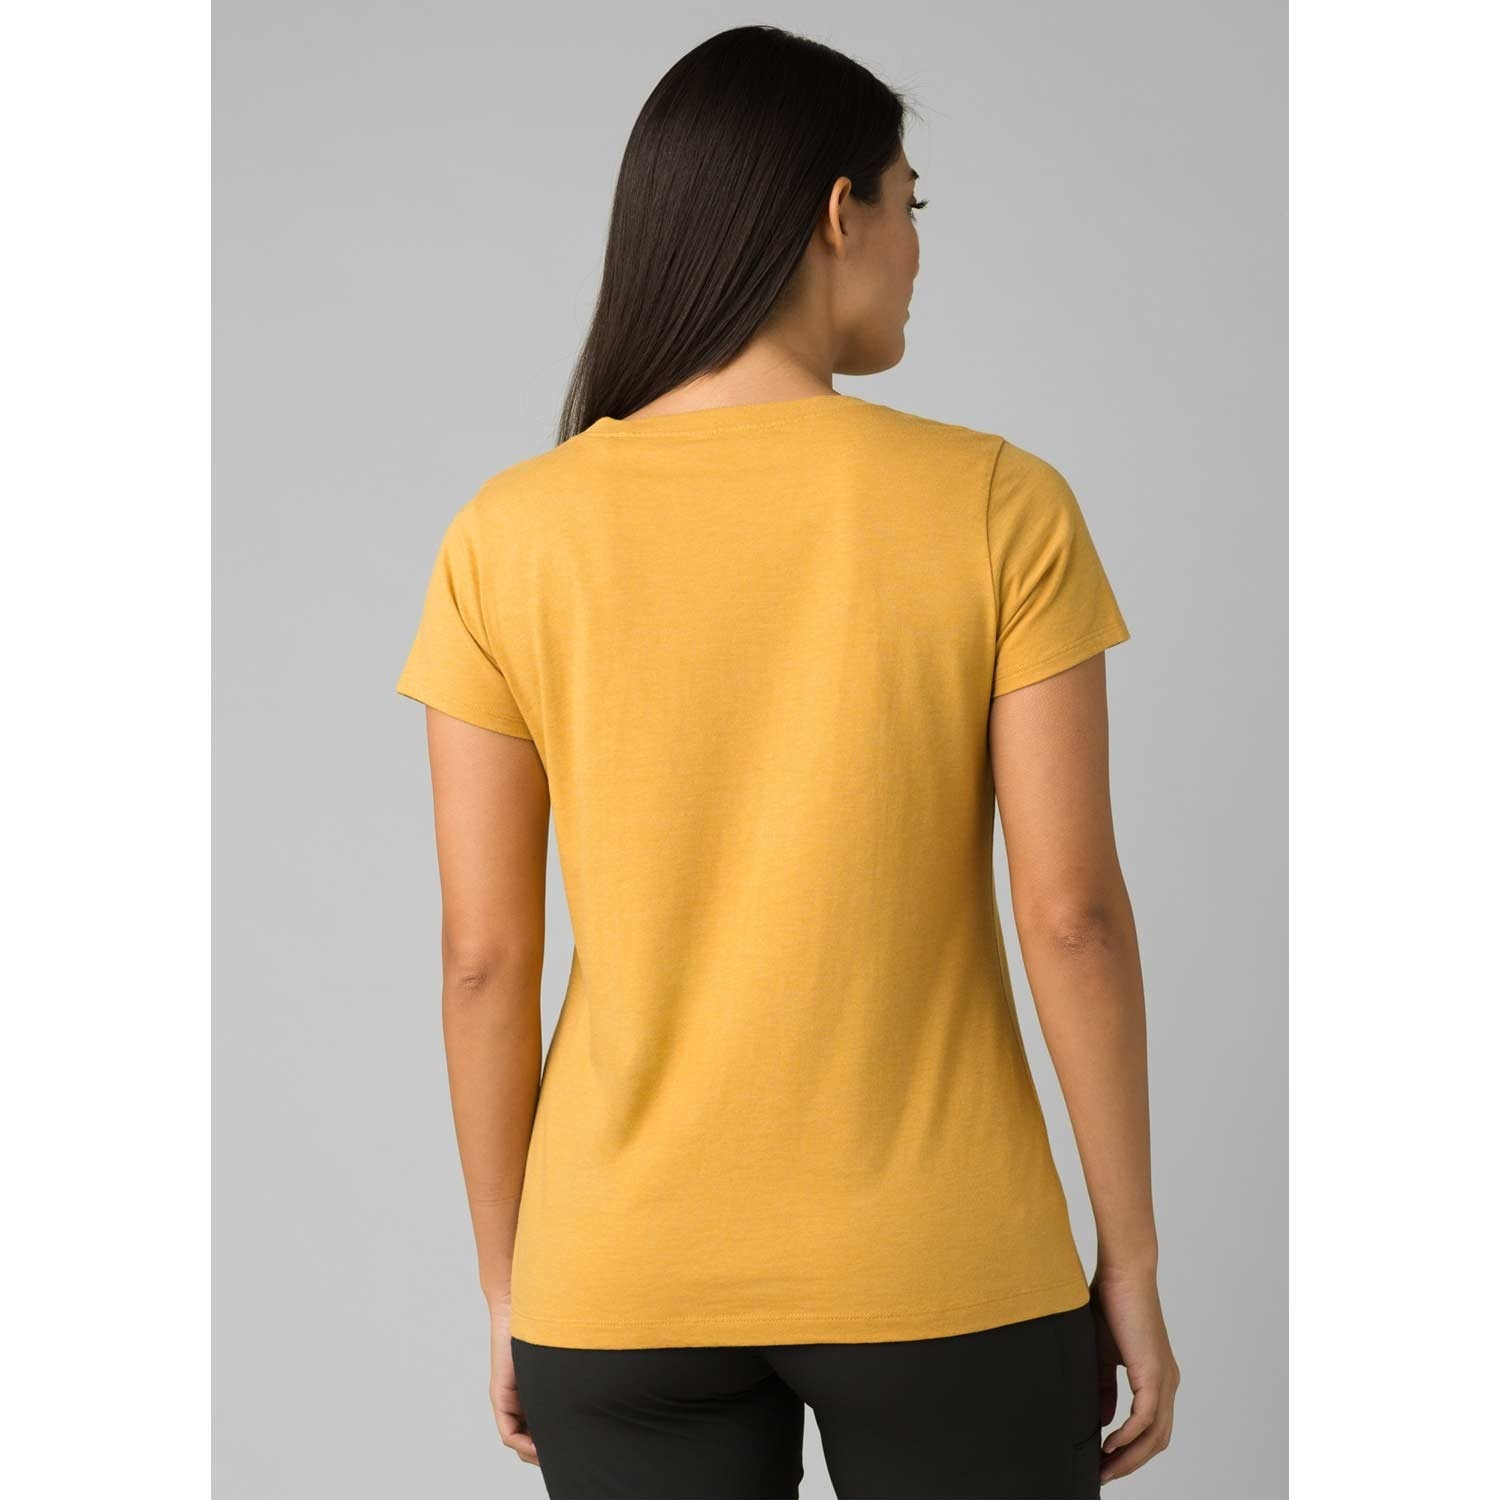 Prana Graphic Tee - Women's - Toffee Reflections